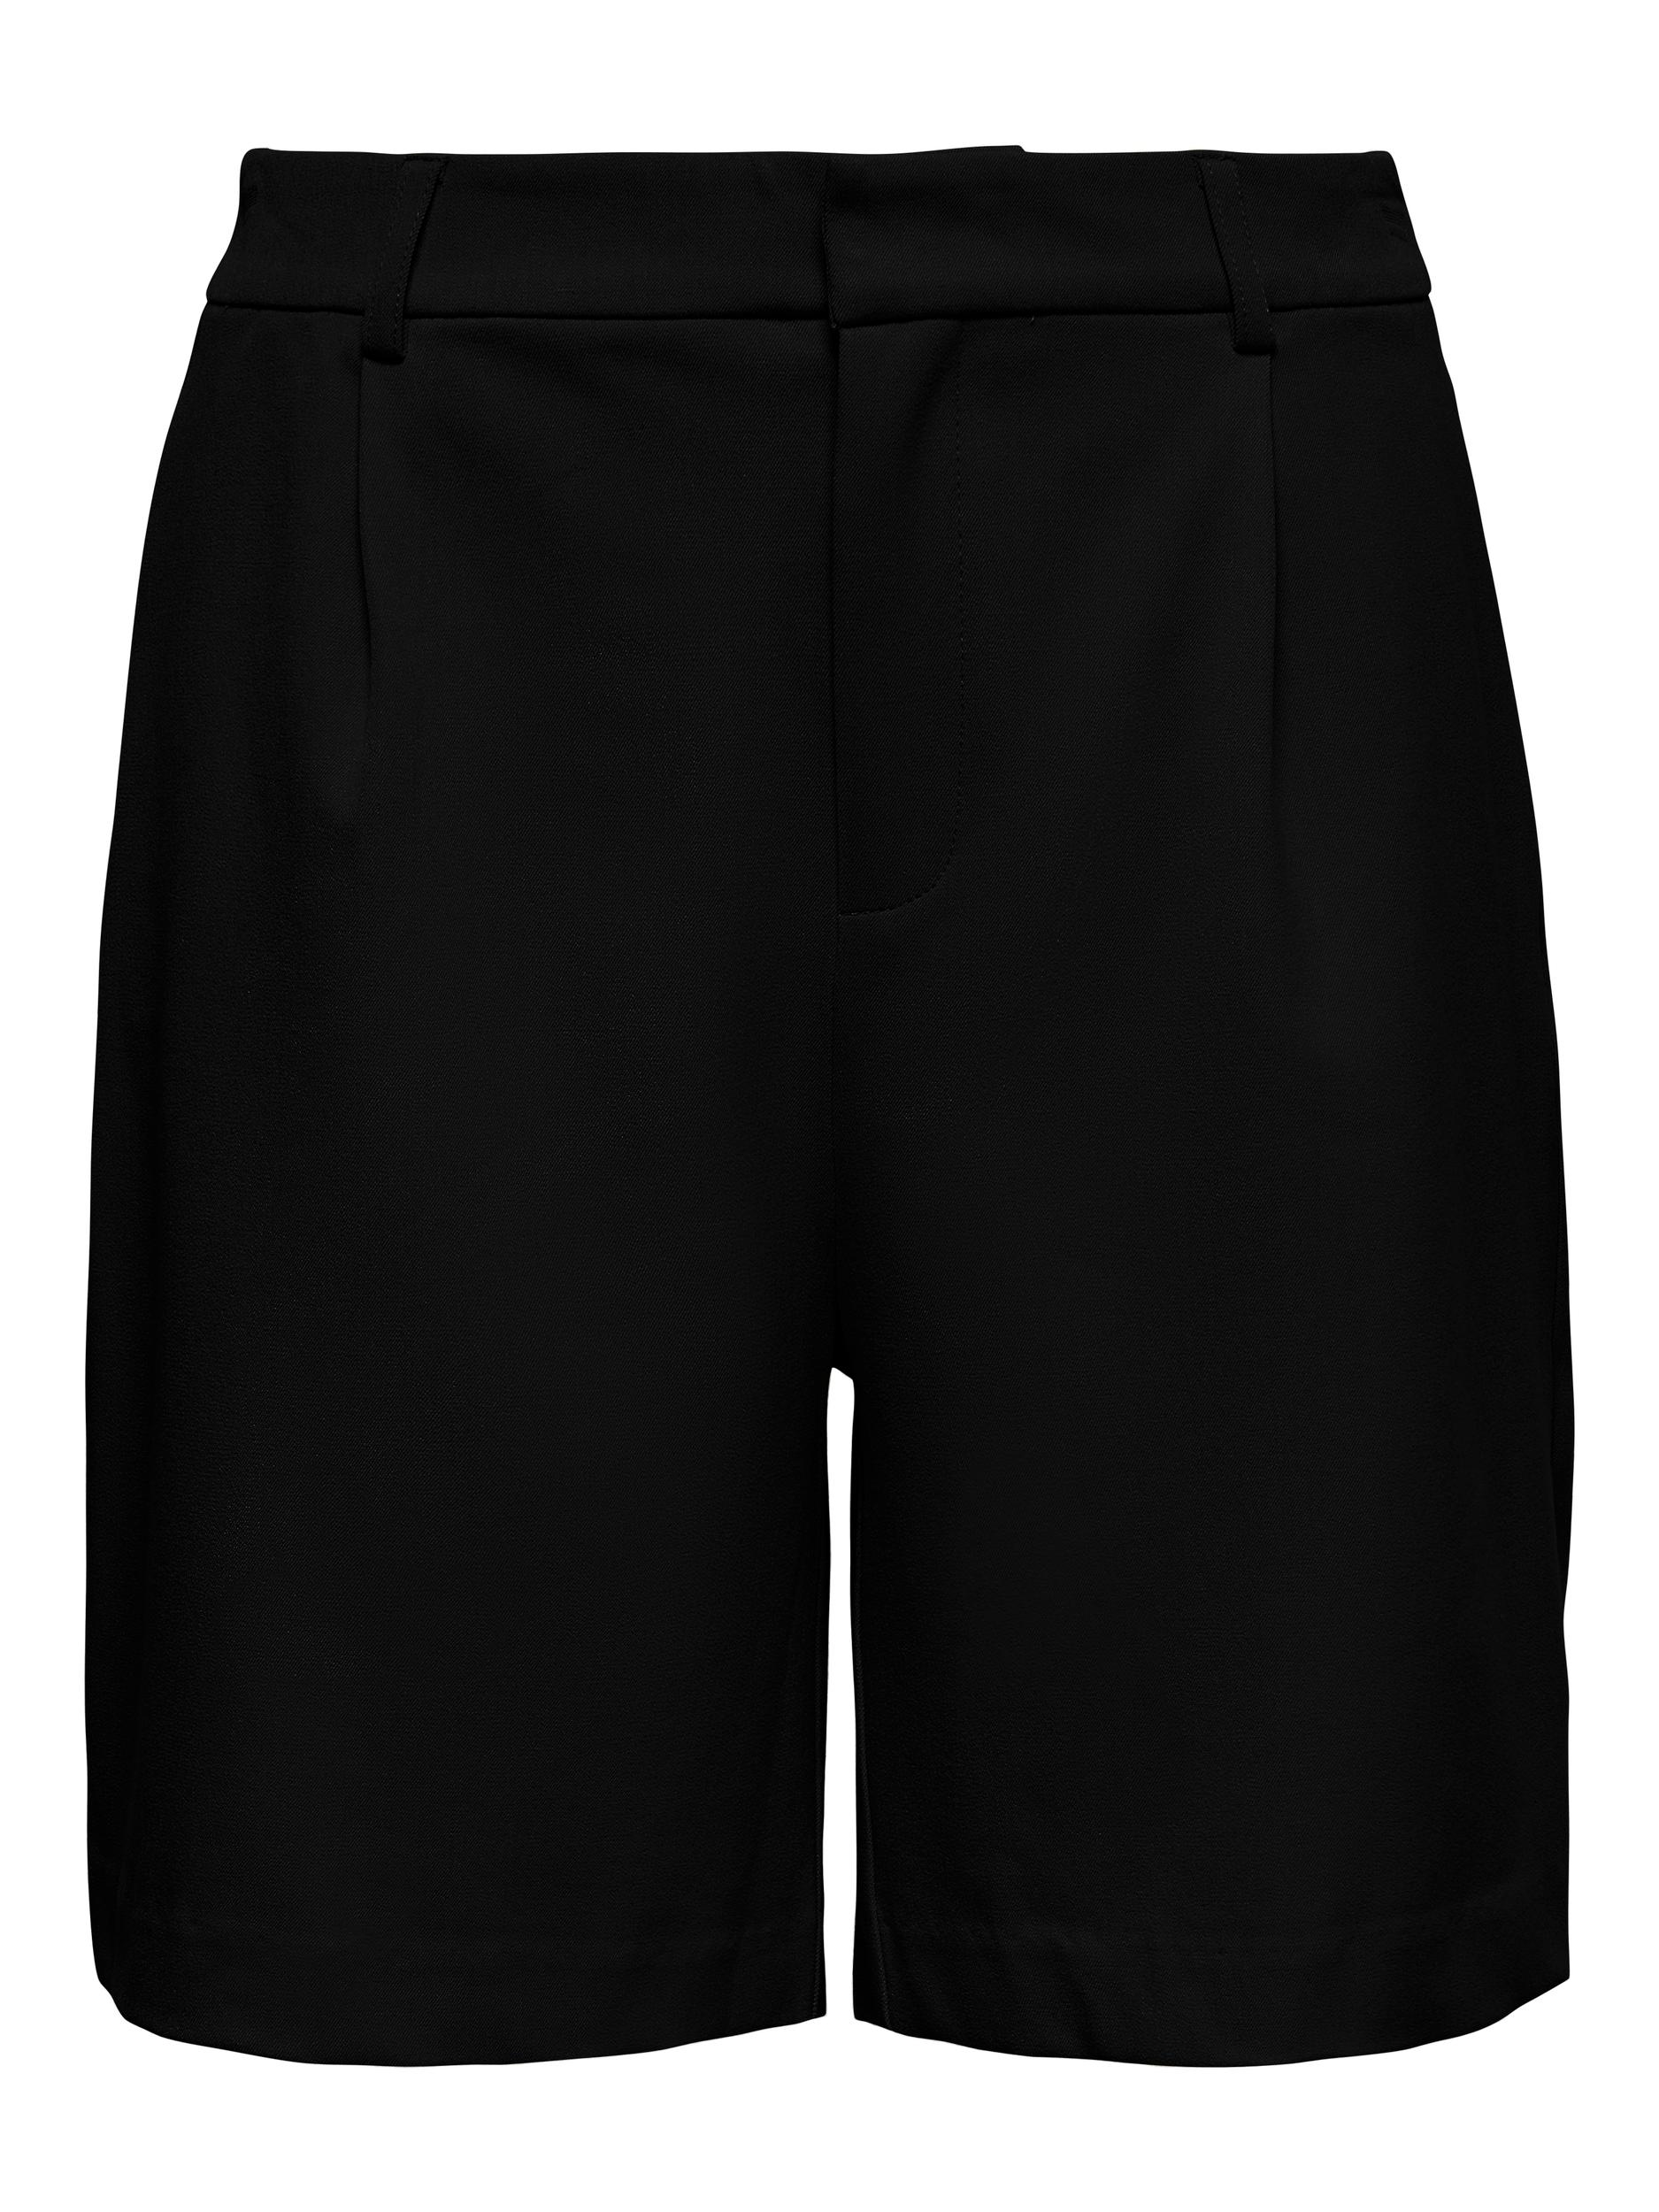 Only Ivy shorts, black, small